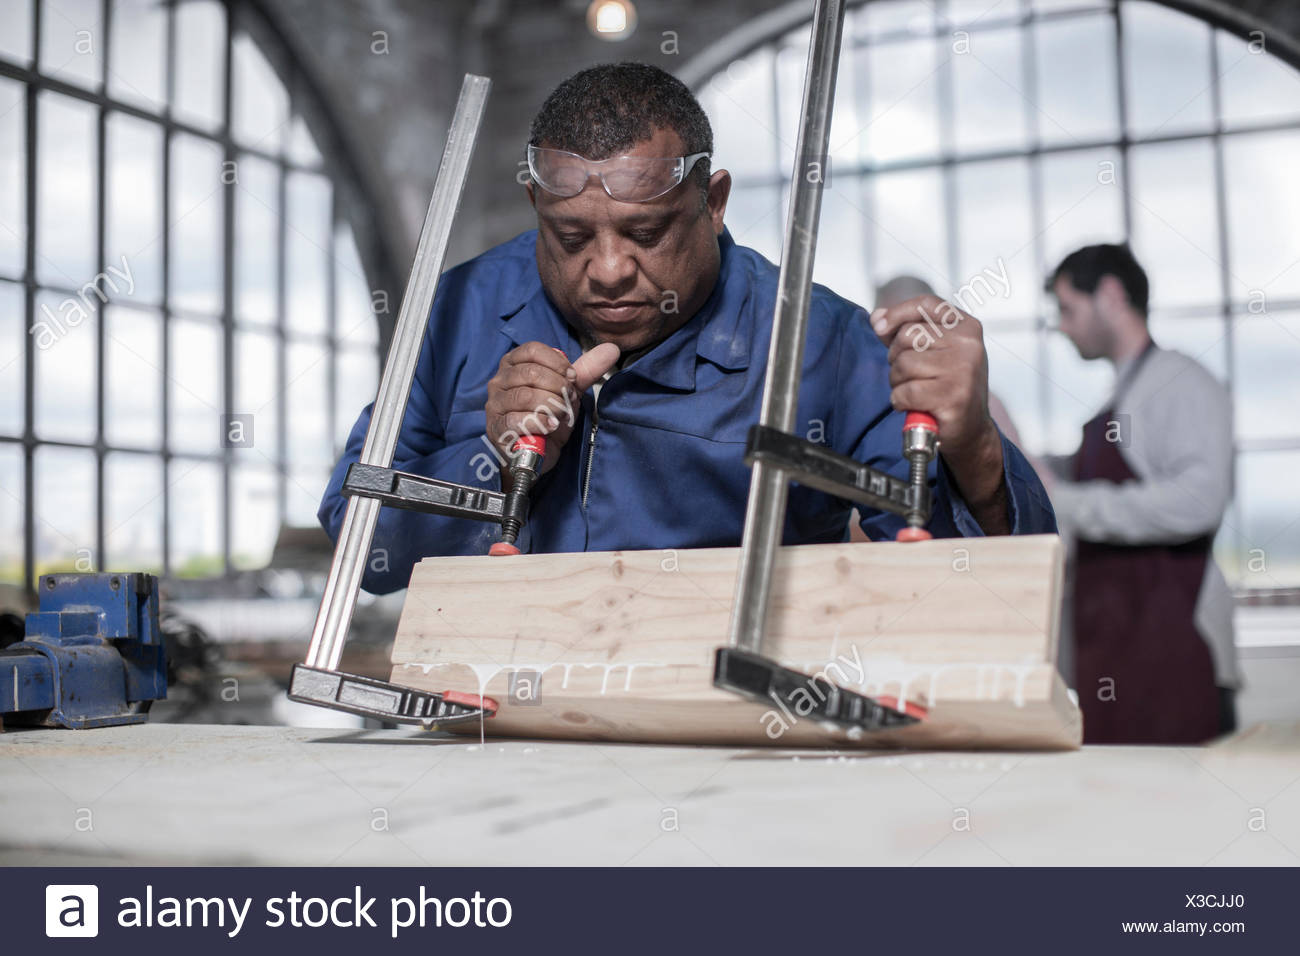 Carpenter gluing and clamping wood in workshop - Stock Image